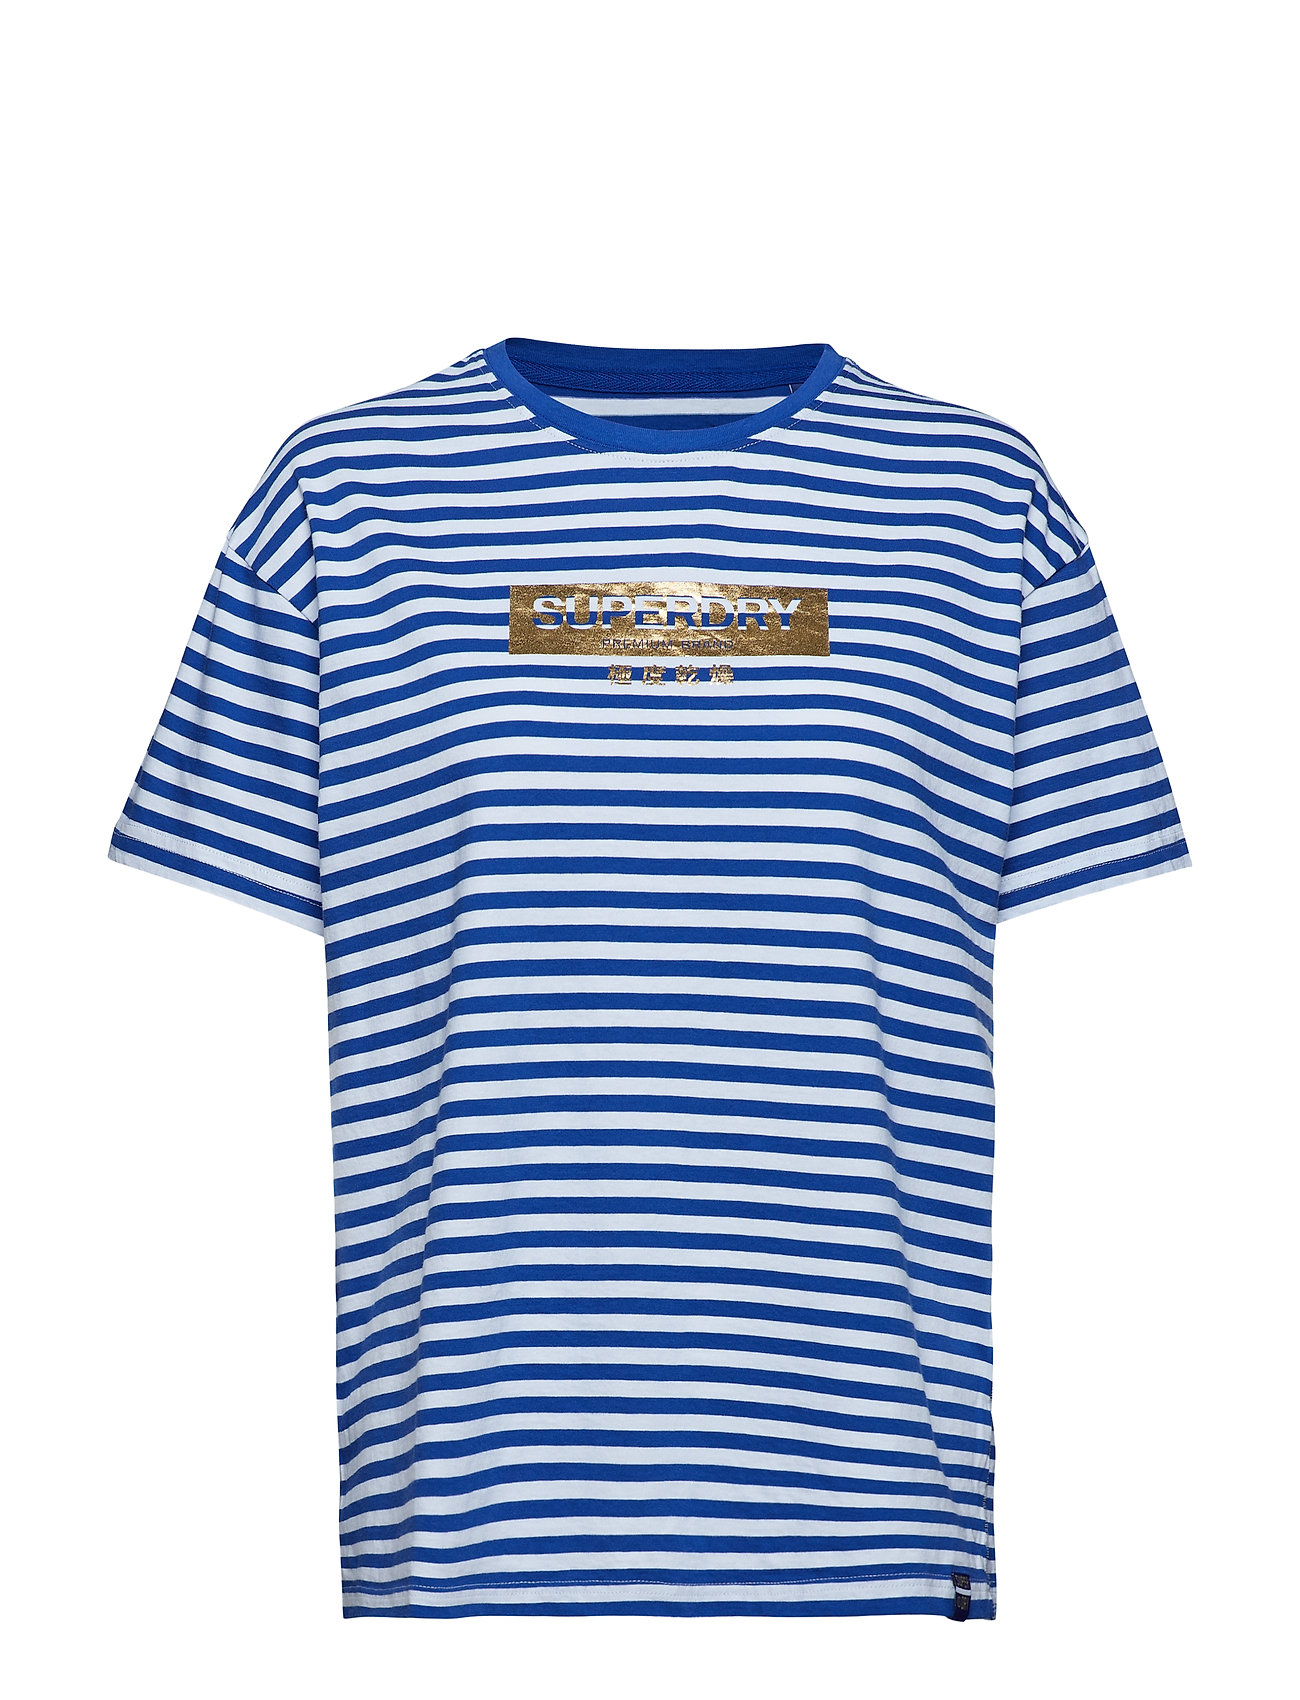 Superdry MINIMAL LOGO STRIPE PORTLAND TEE - MONICO BLUE/OPTIC STRIPE